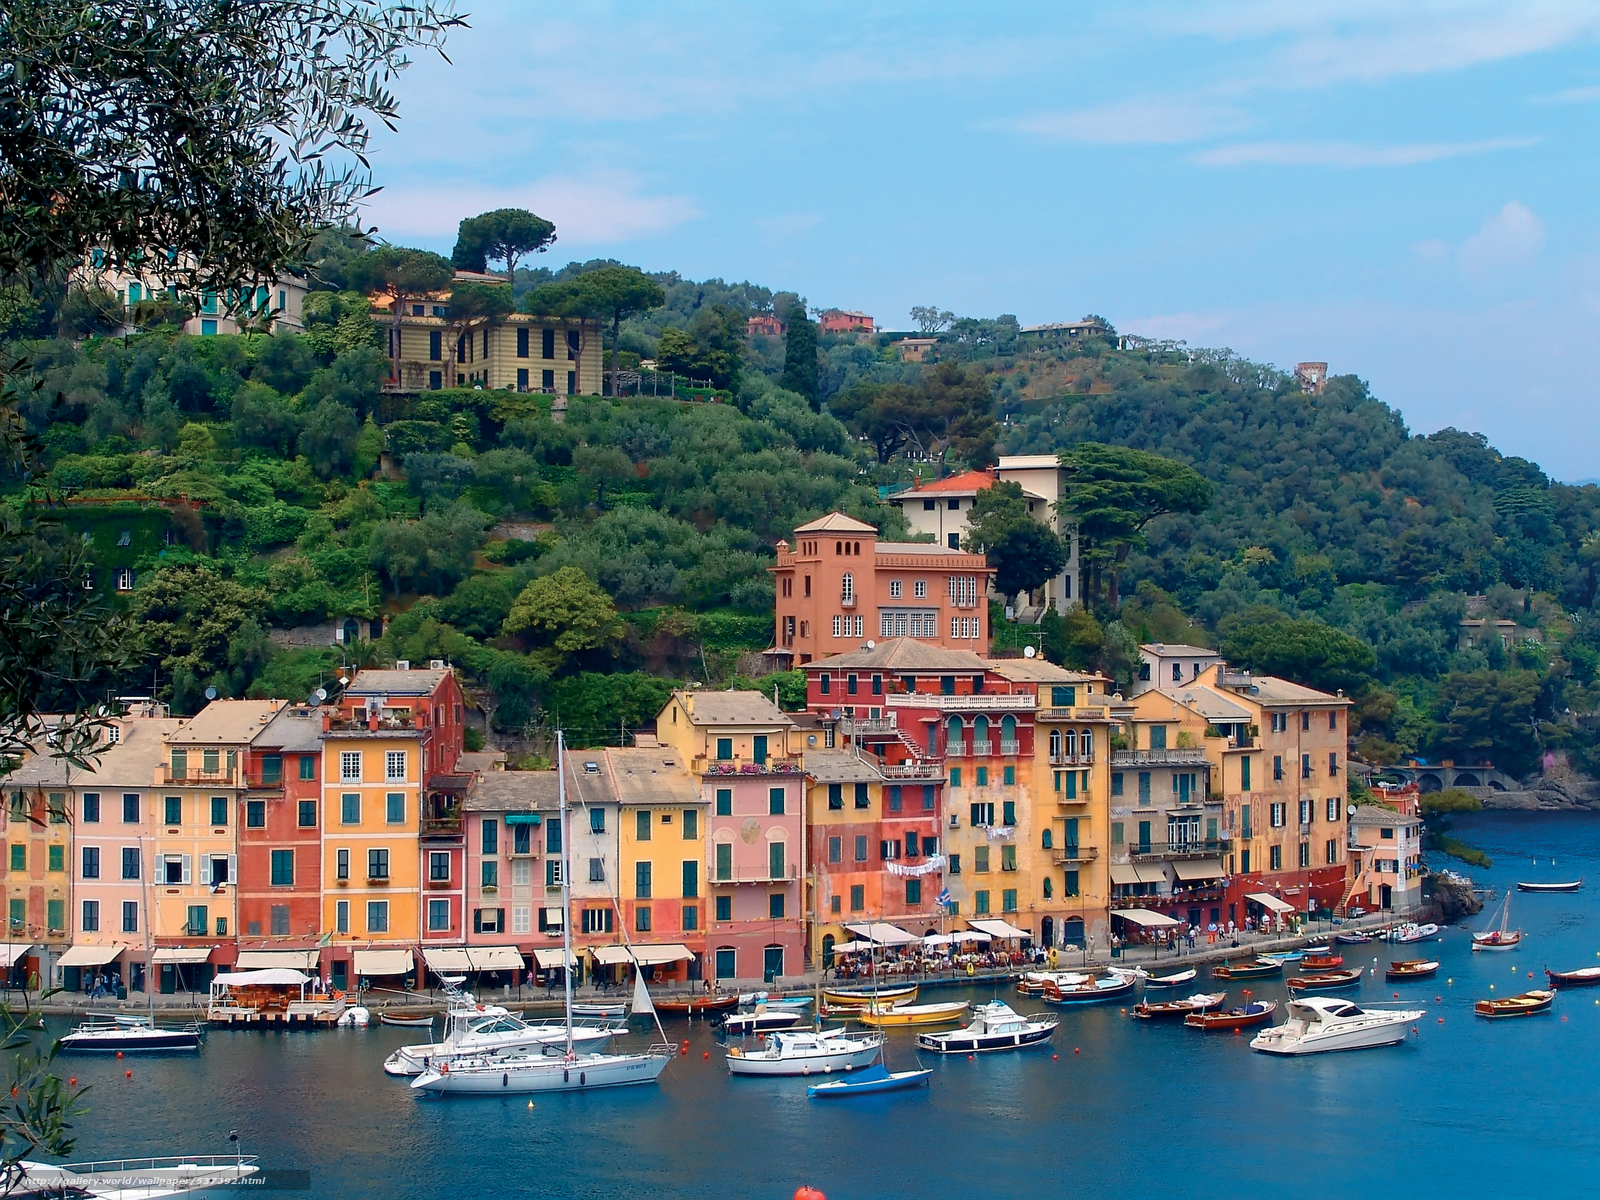 Genoa Italy  city photos gallery : Download wallpaper Portofino, Genoa, Italy free desktop wallpaper in ...